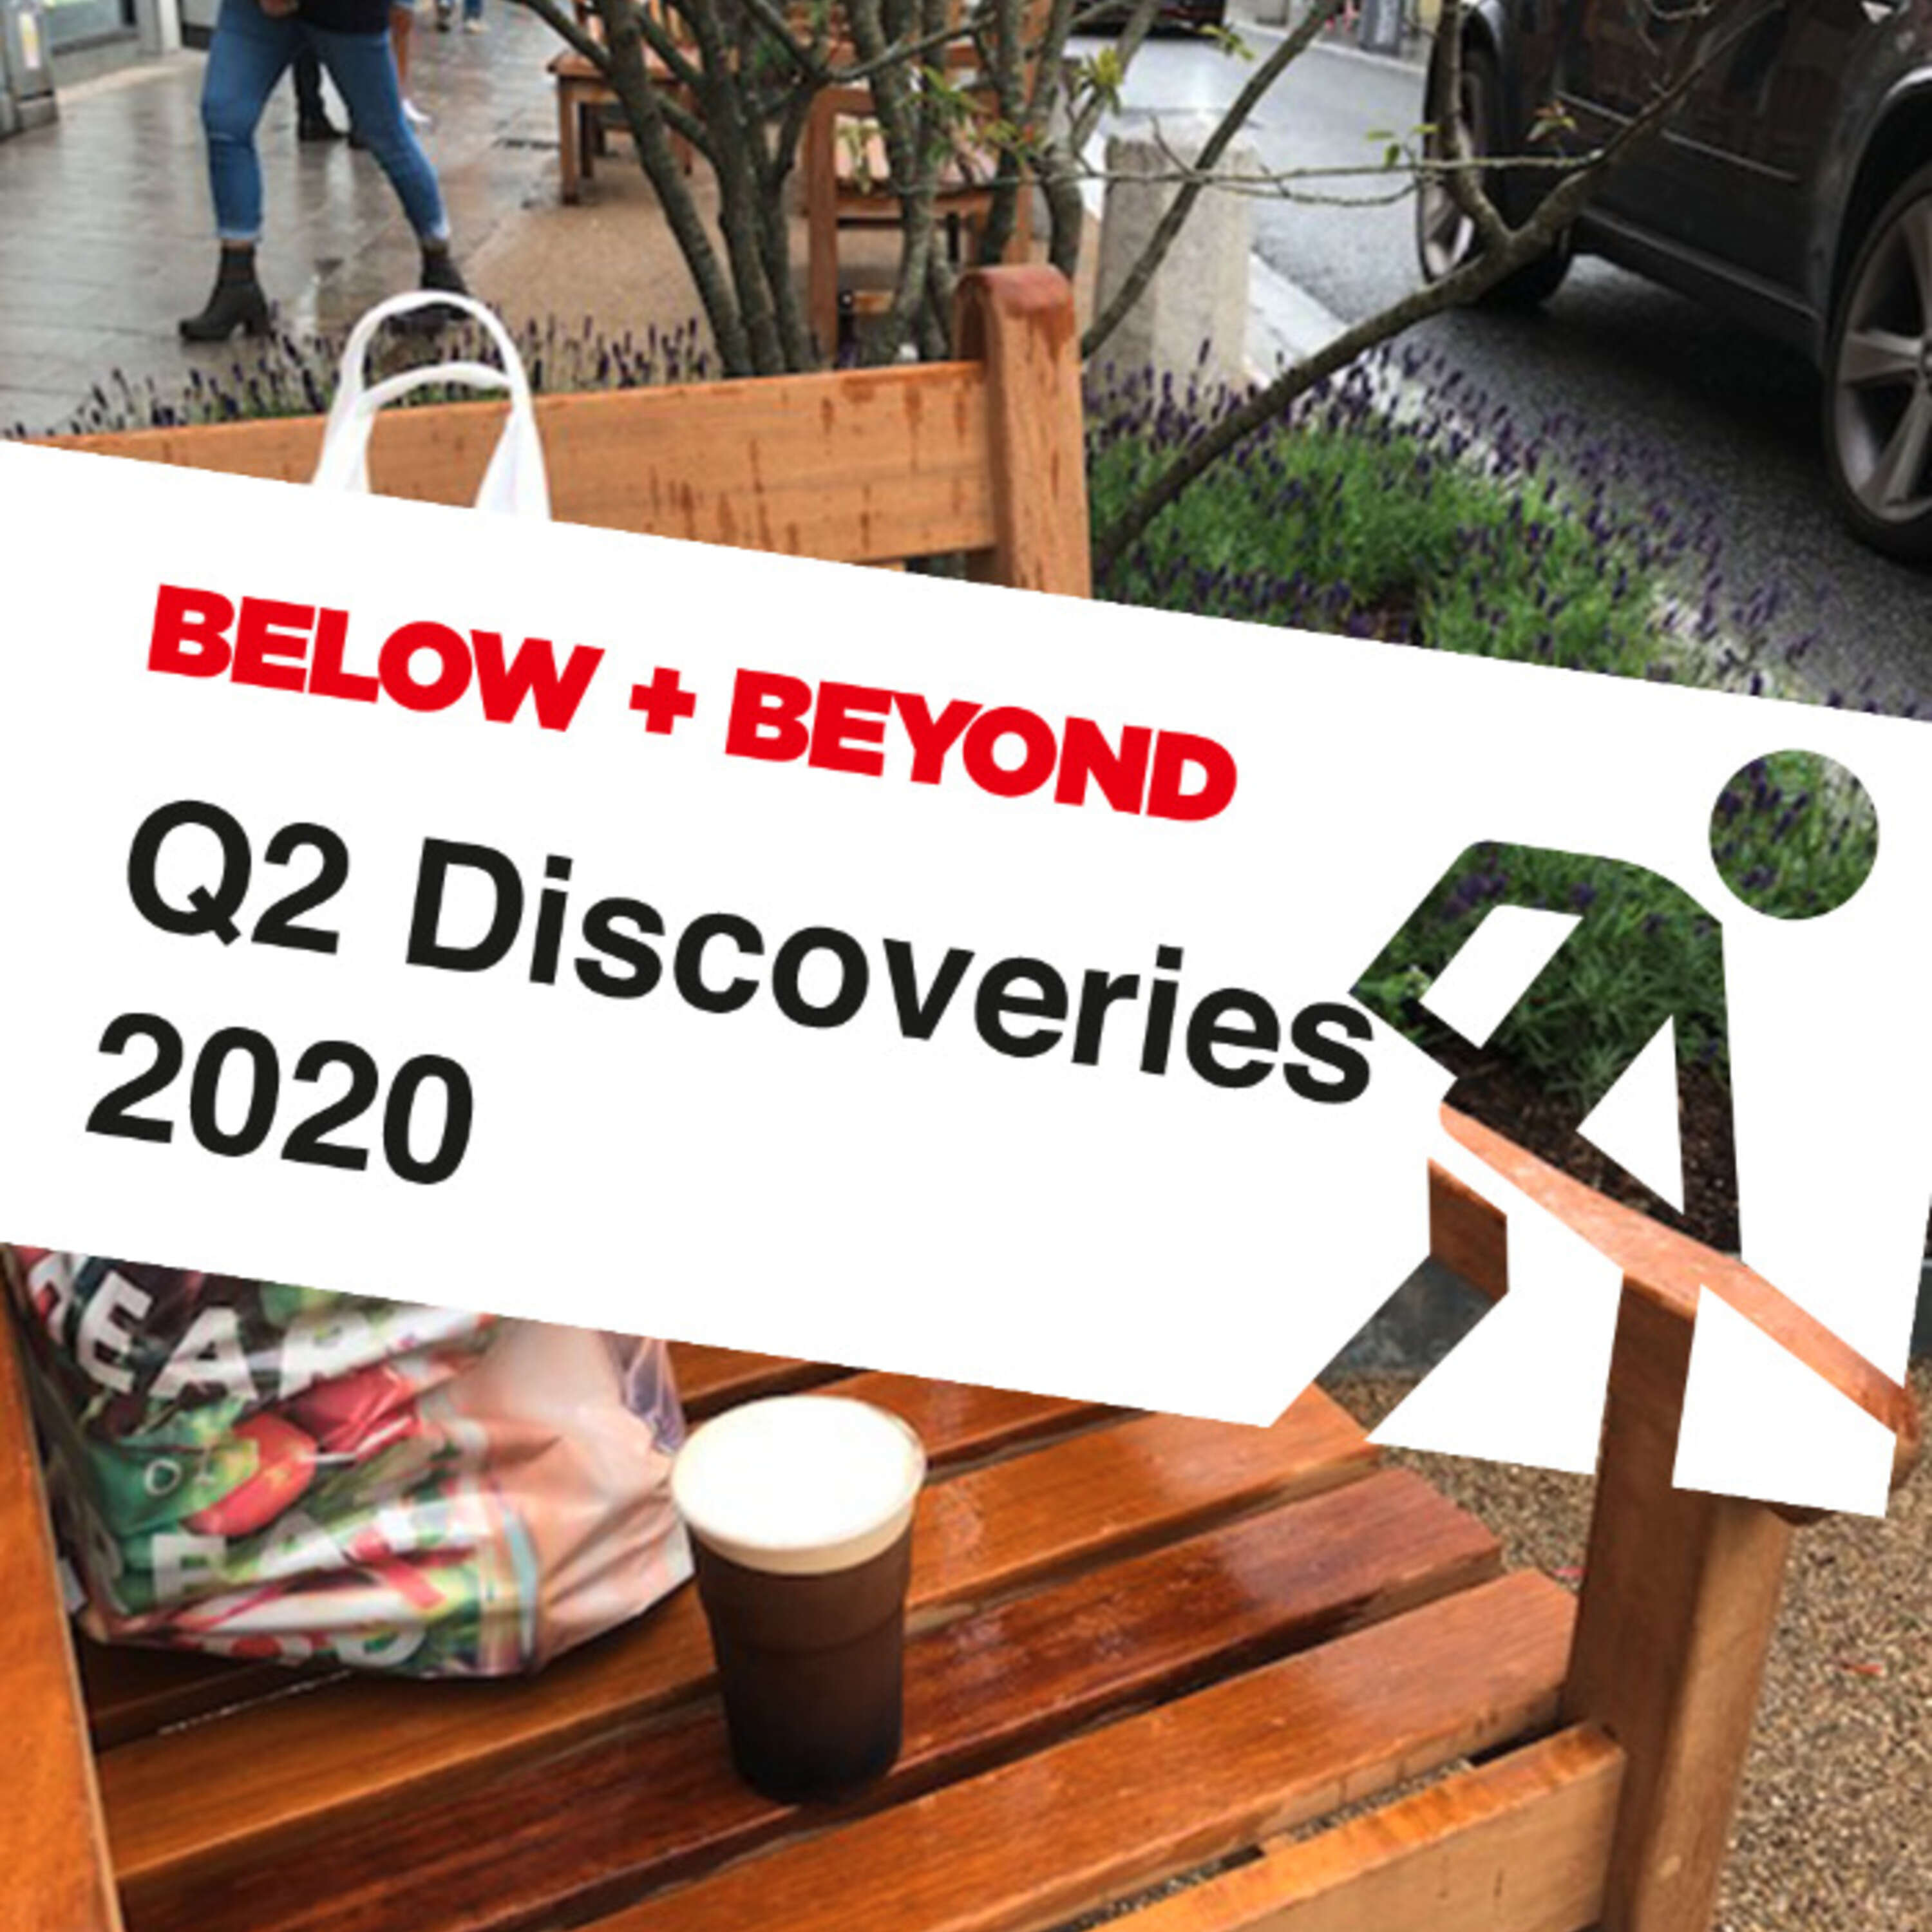 Below and Beyond Q2 Discoveries 2020